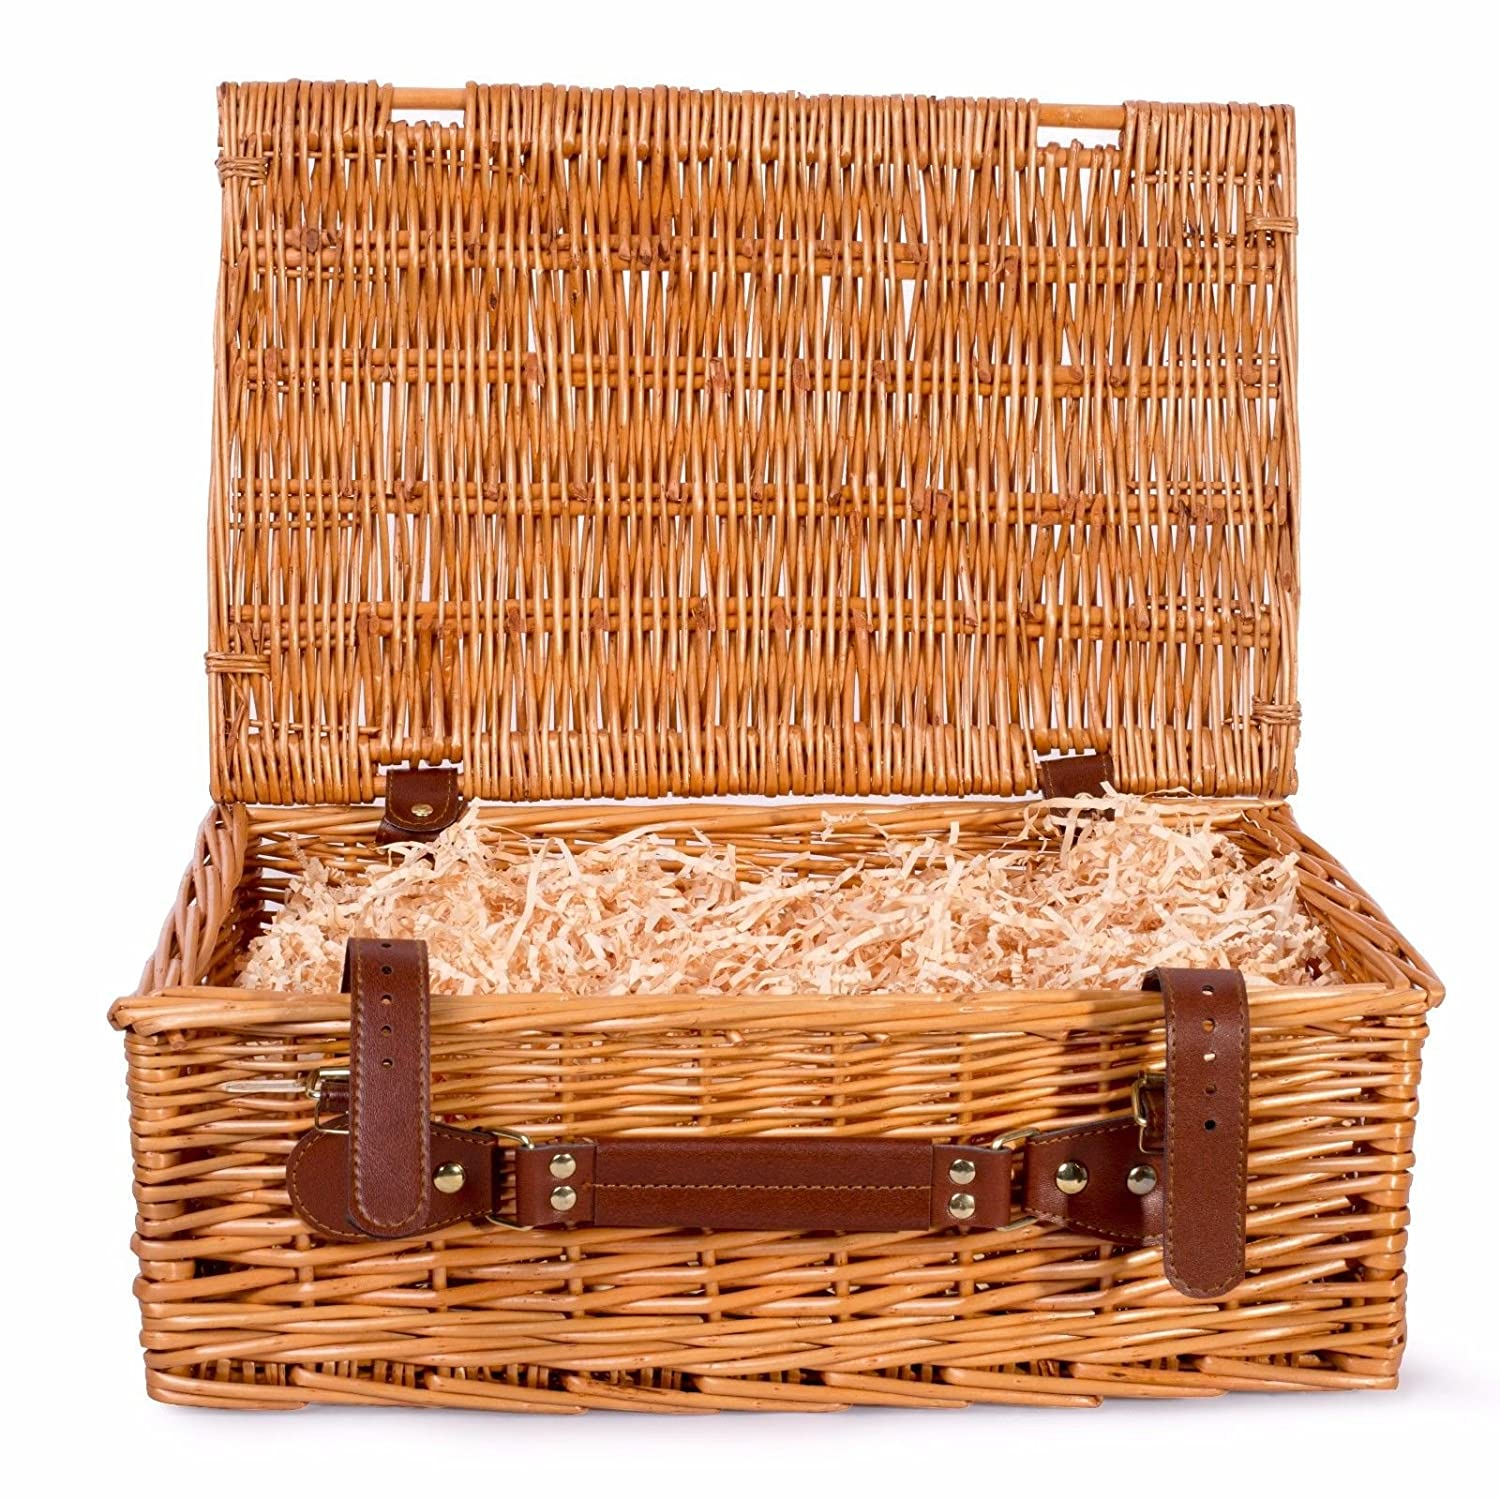 Basic House Ltd Premium Wicker Picnic Hamper Hampers Shop Retail Display Home Decoration (Small)